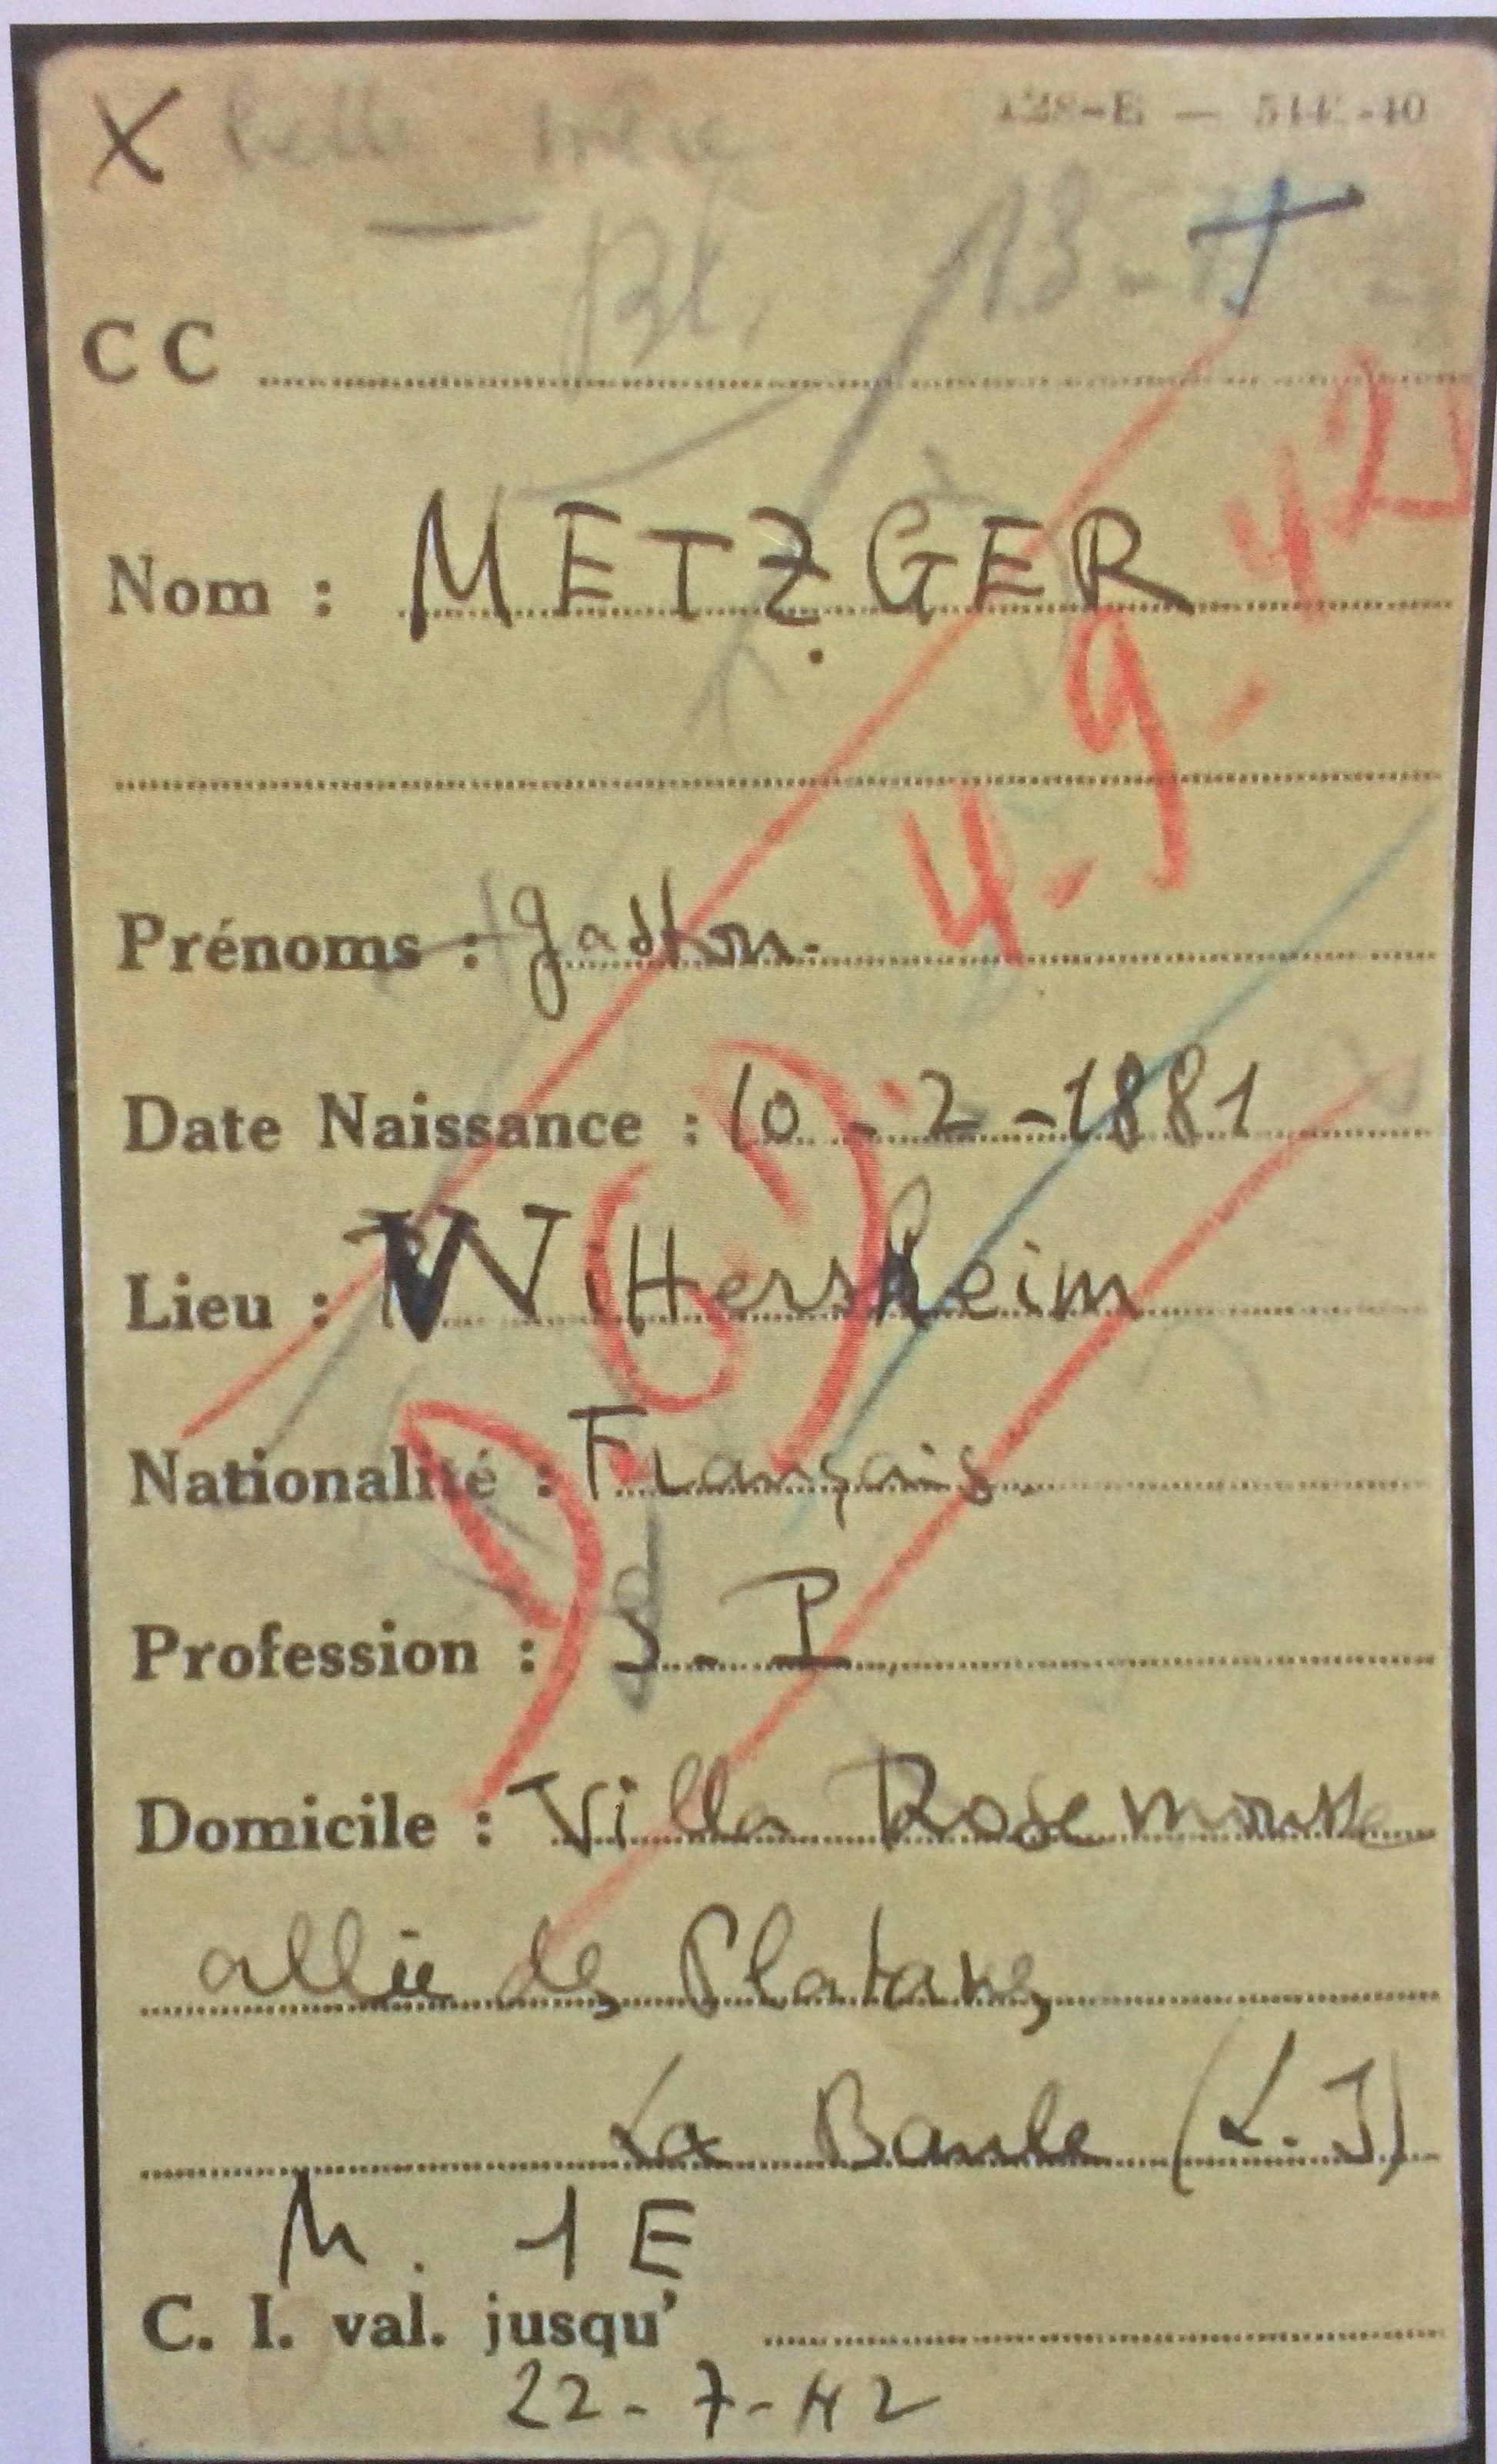 Fiche d'internement de Gaston METZGER [Archives Nationales F/9]